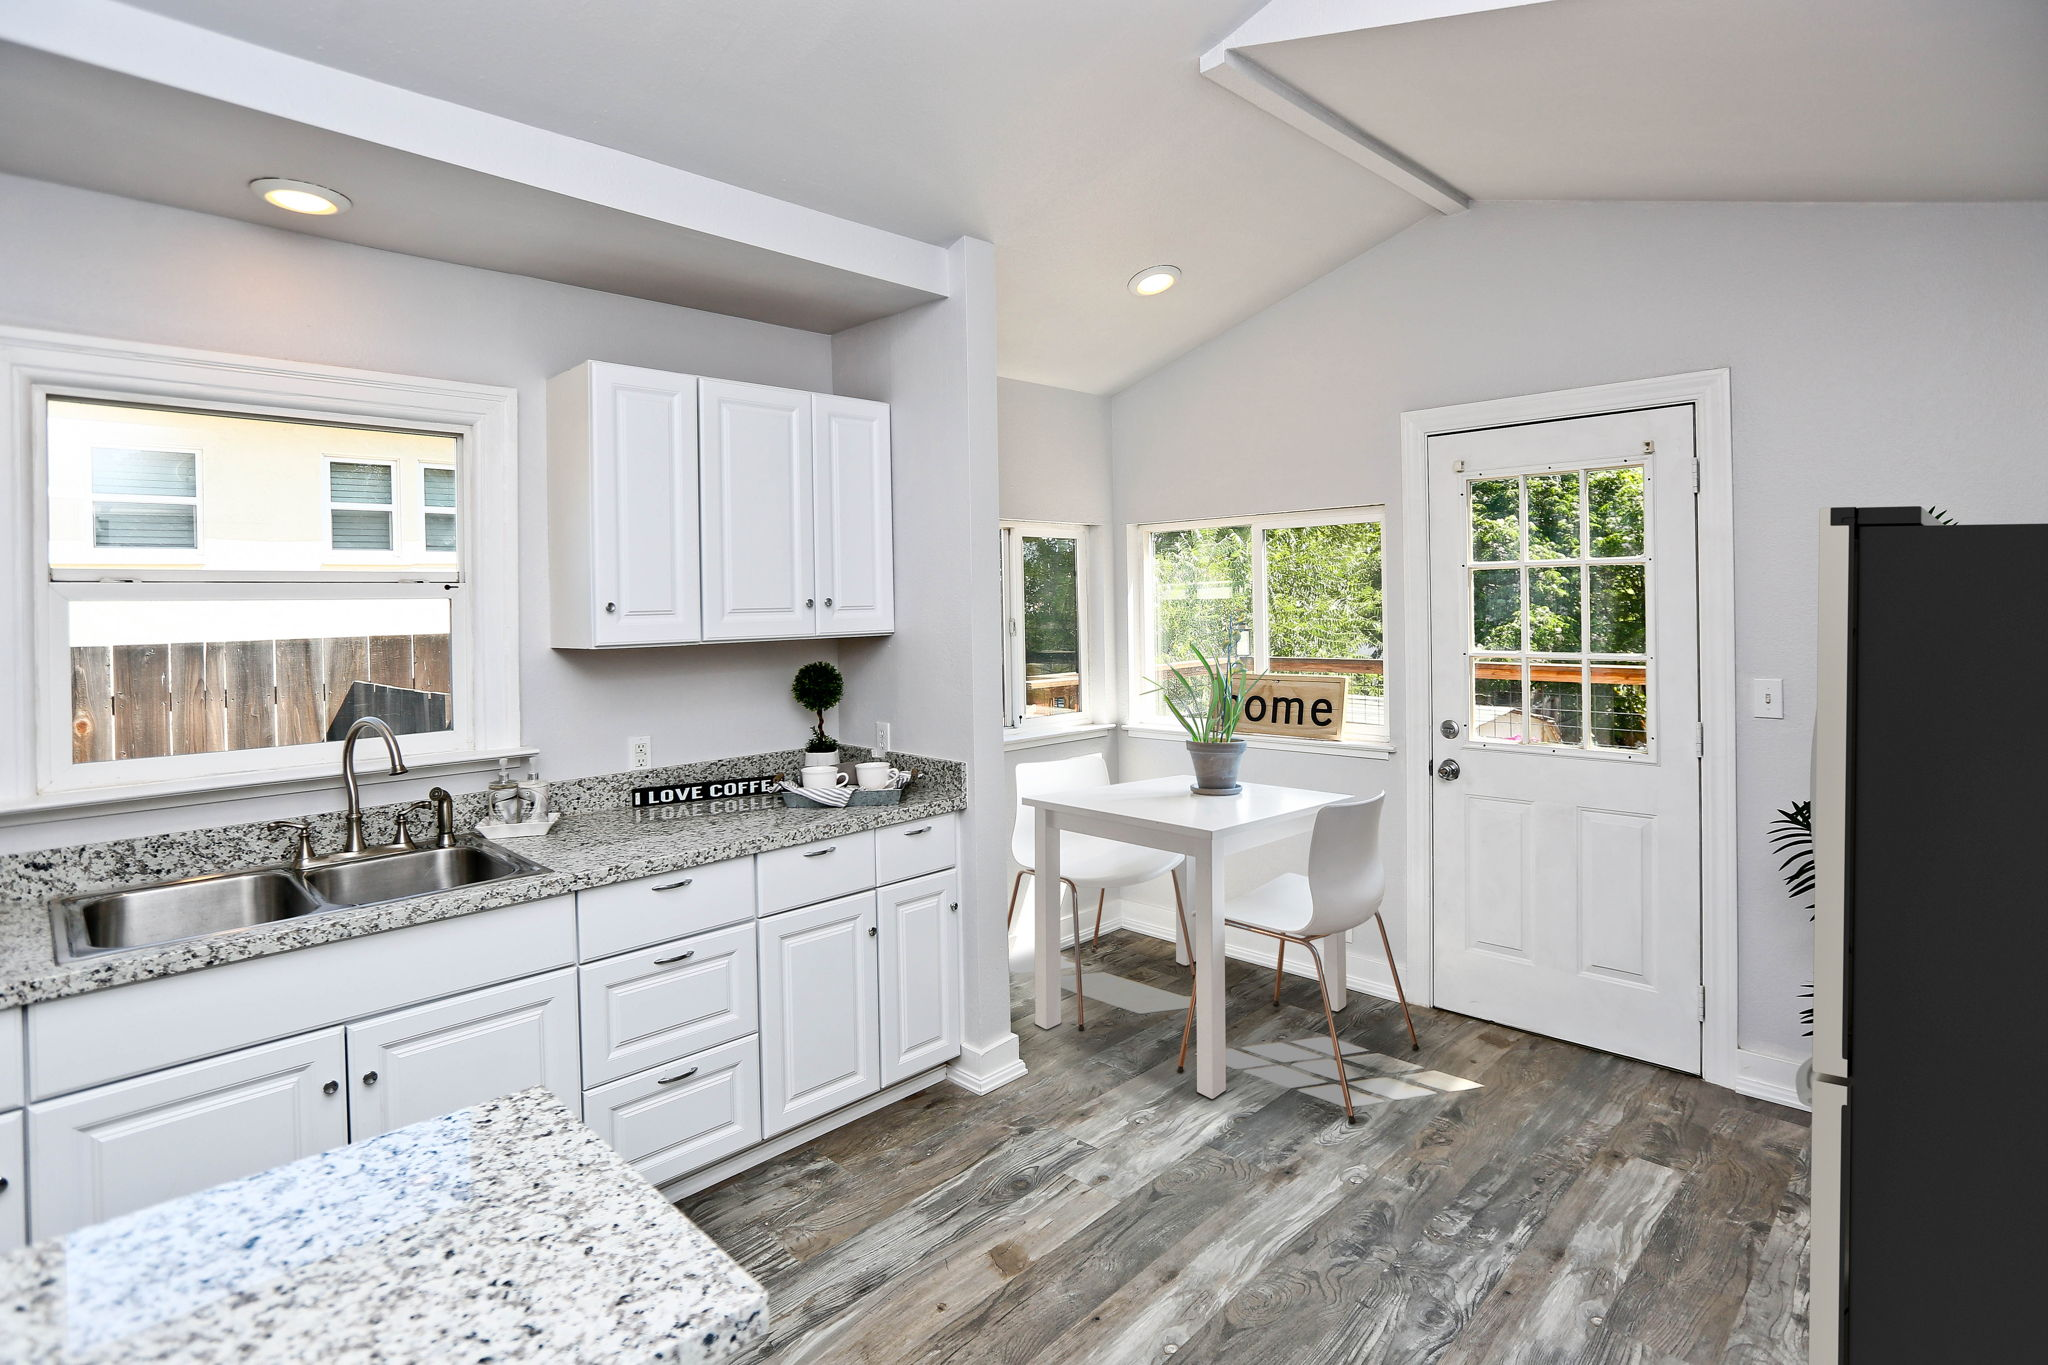 Table, chairs, fridge-virtual staging